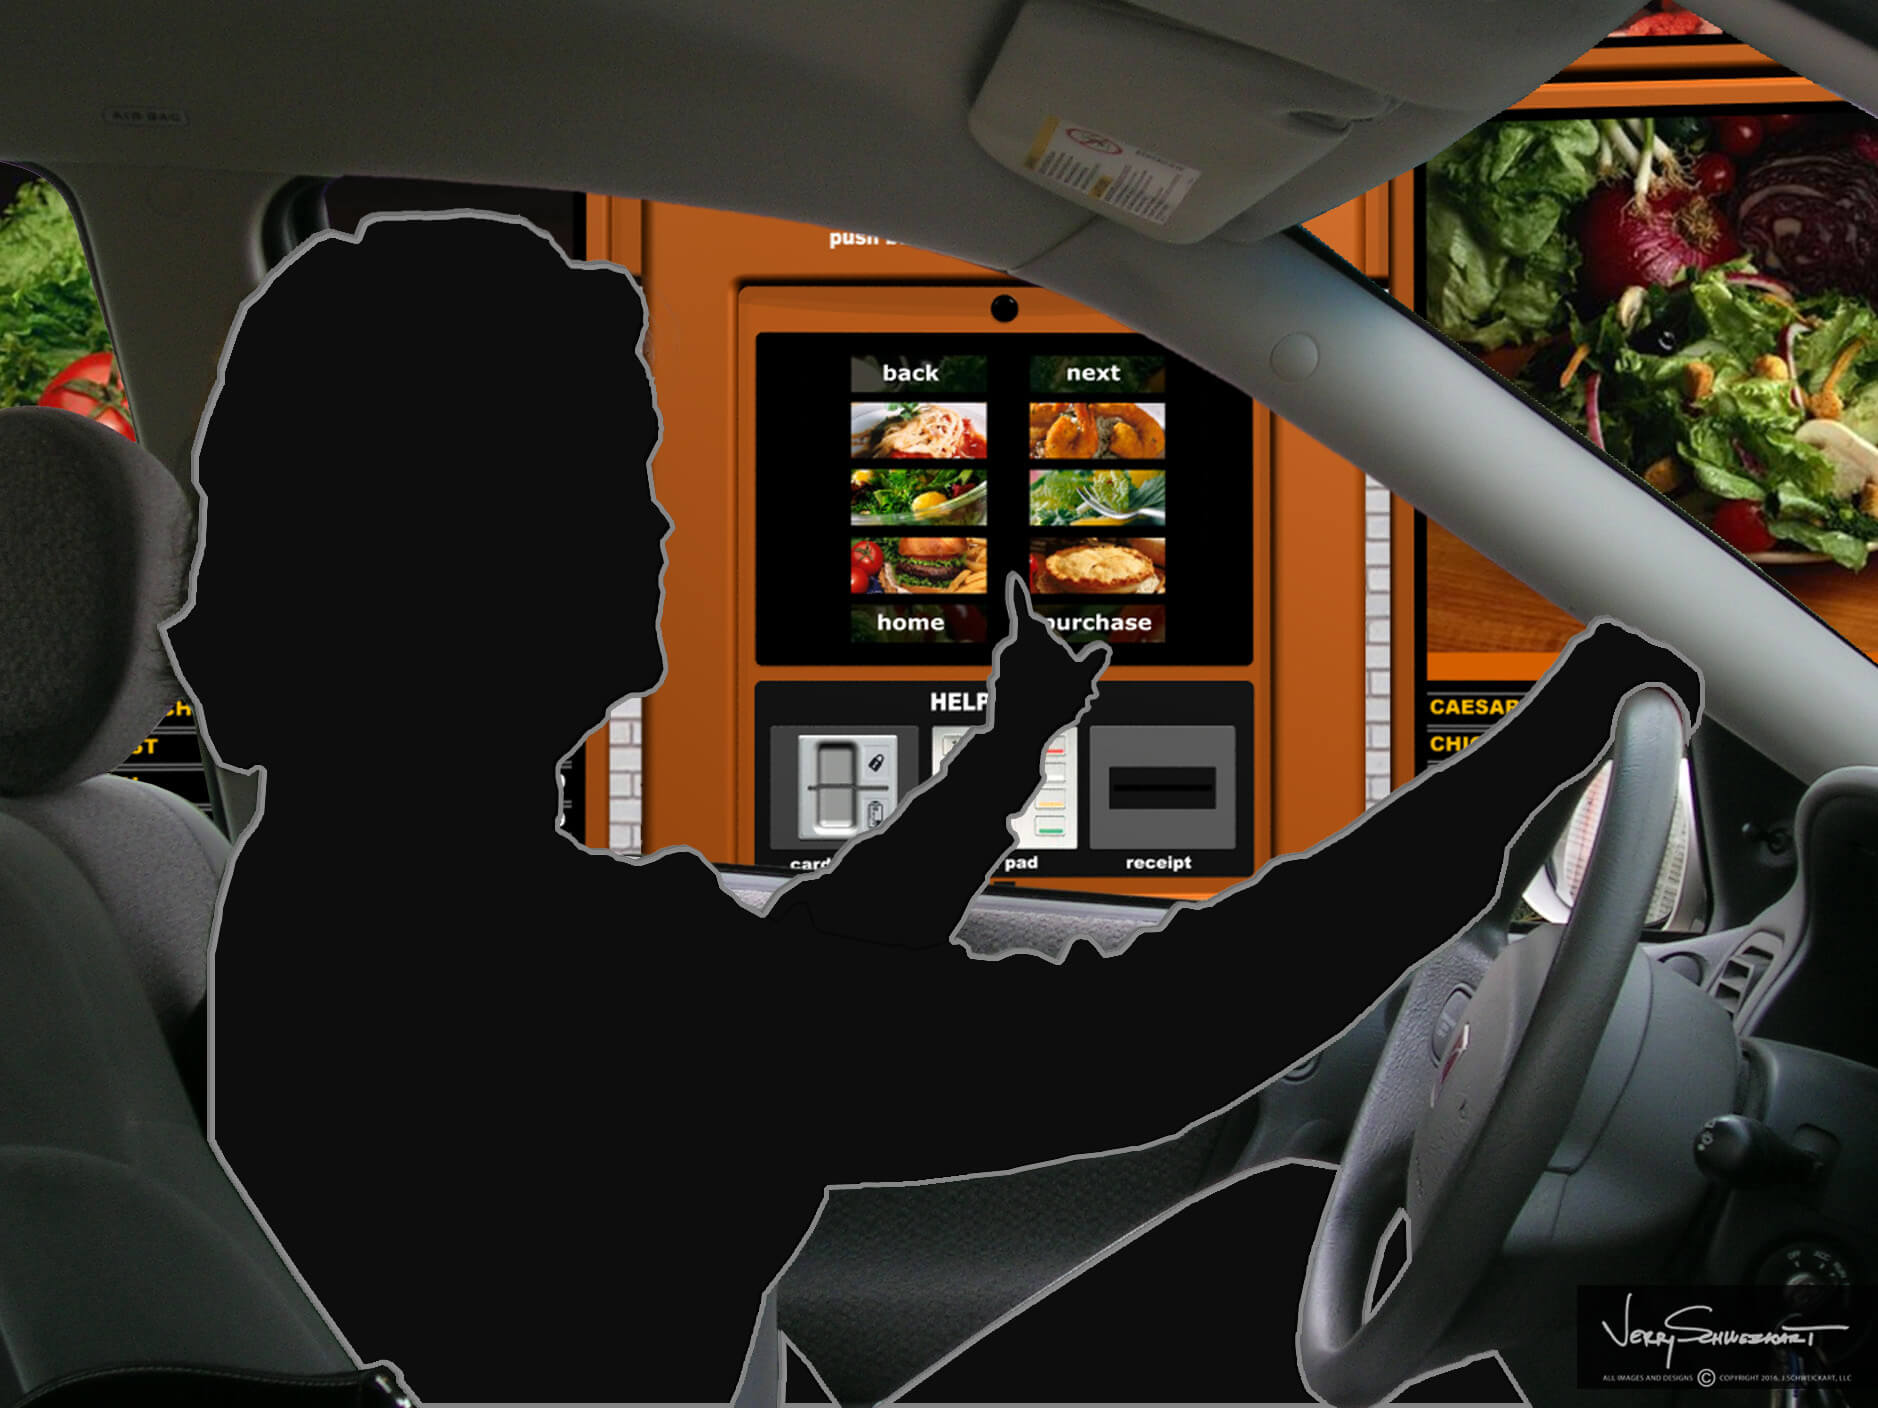 QSR Drive-Thru Kiosk has design features which take into account human factors and various user elevations; Designed by Industrial Designer Jer Schweickart